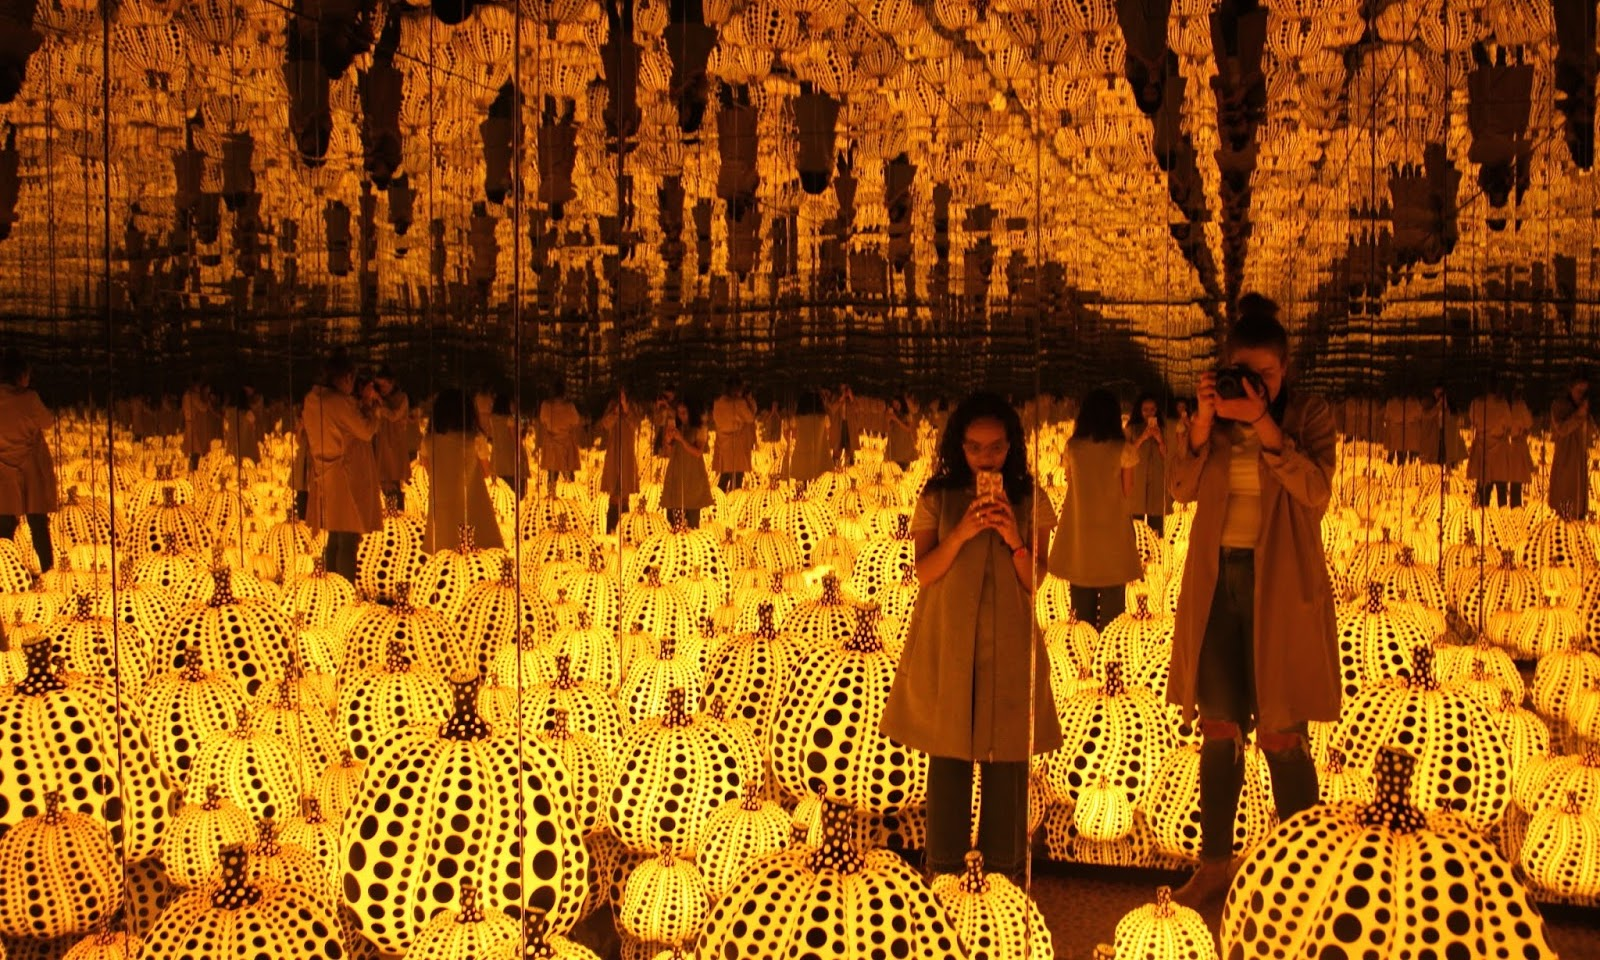 Yayoi Kusama: Sculptures, Paintings & Mirror Rooms